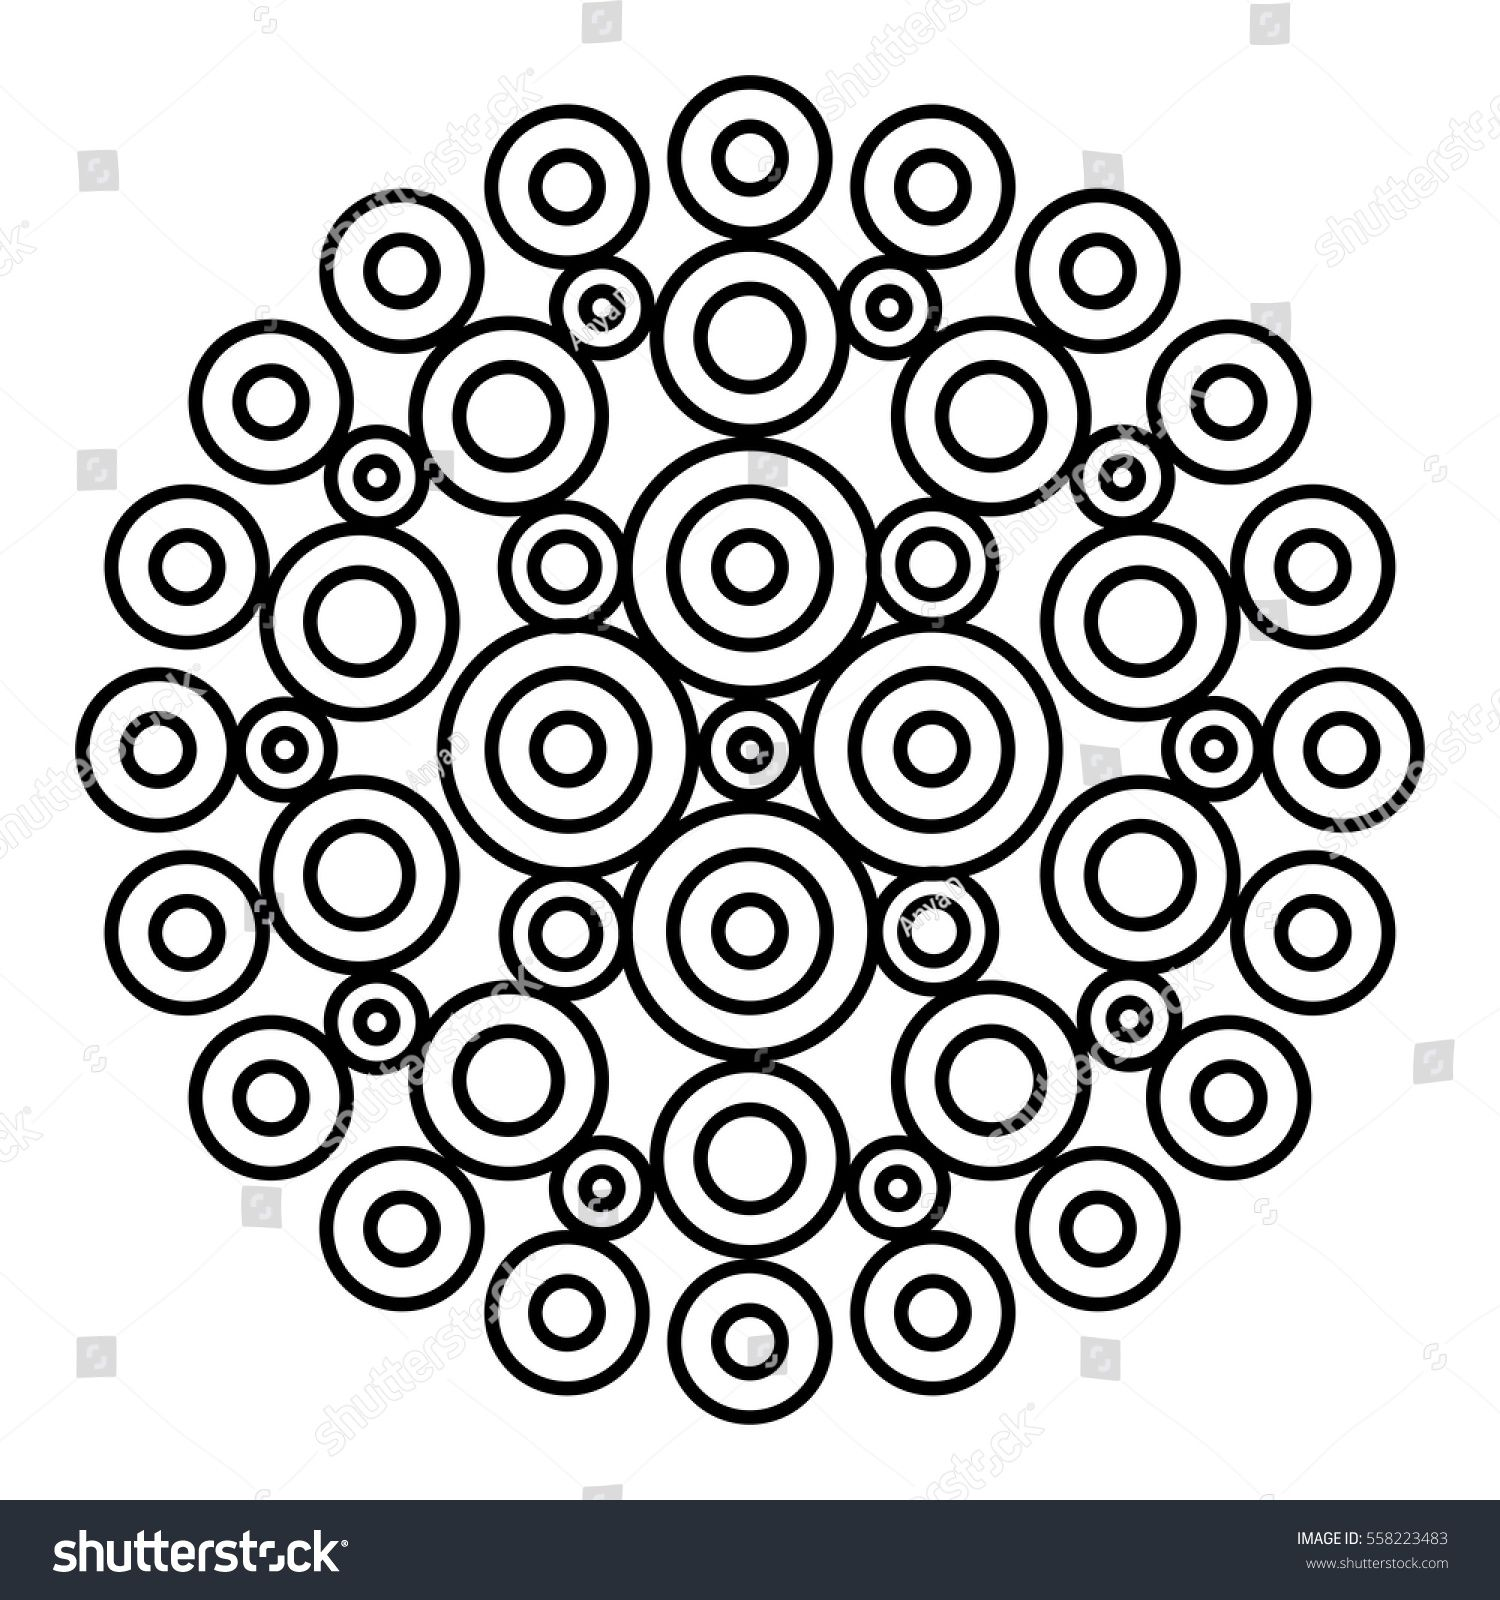 Easy Black And White Mandala For Coloring Book Pages Concentric